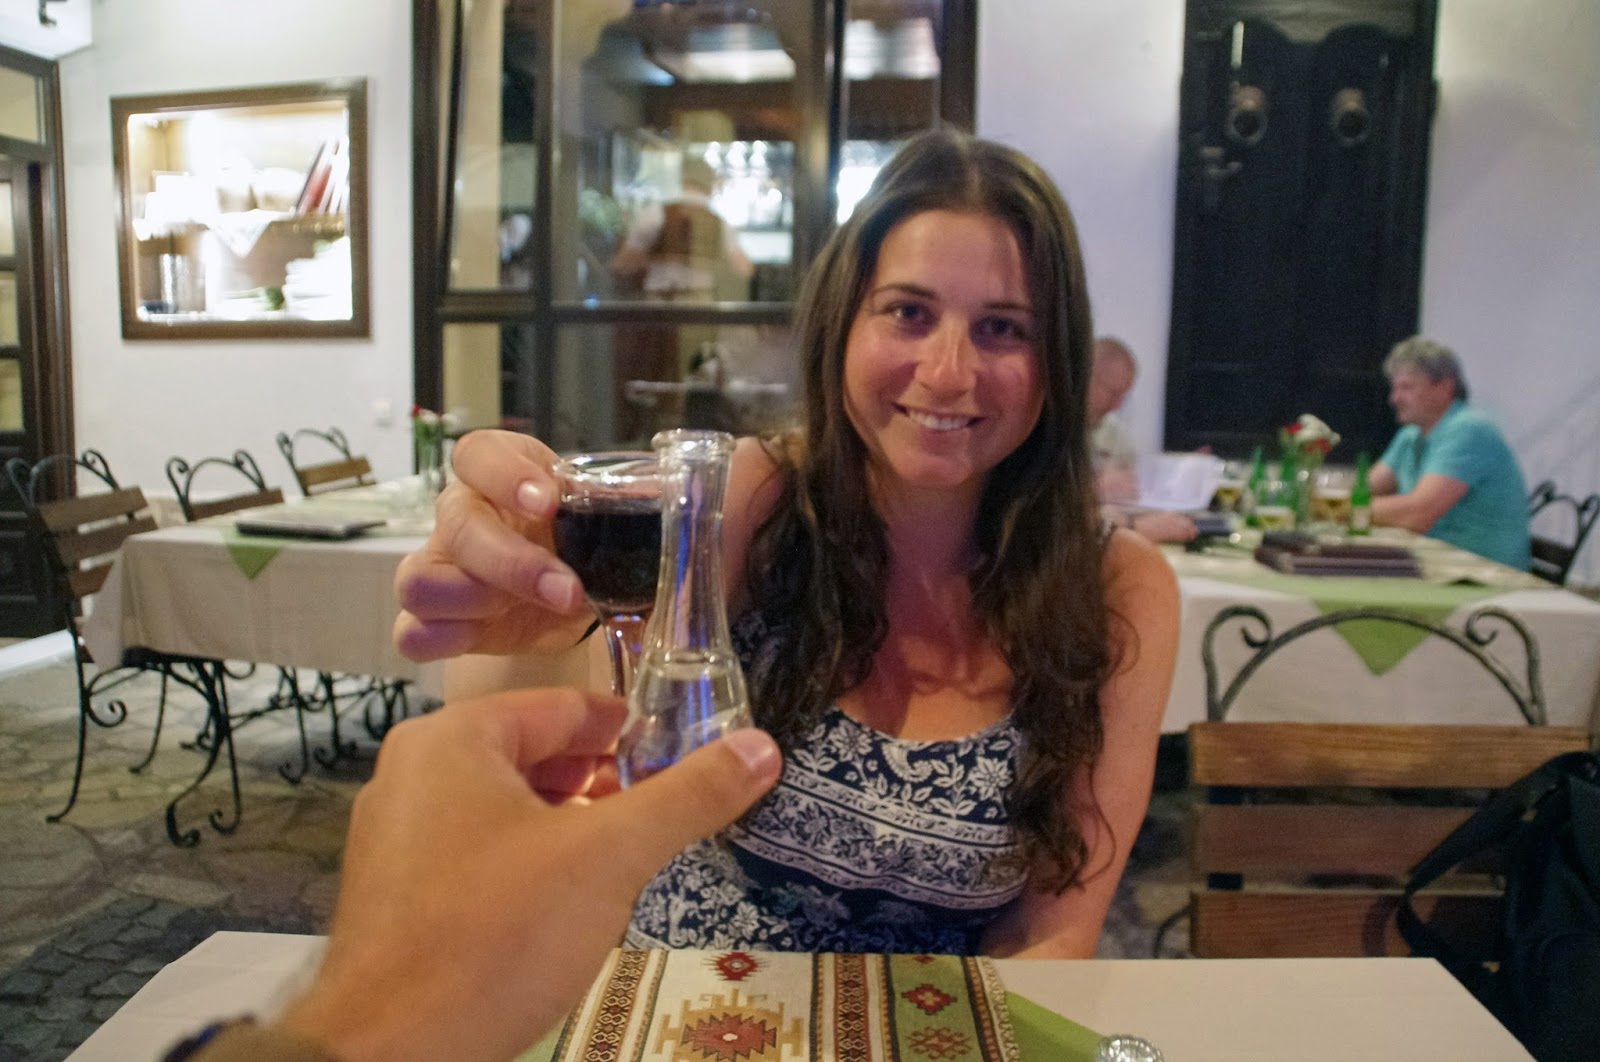 Drinking Raki in Mostar